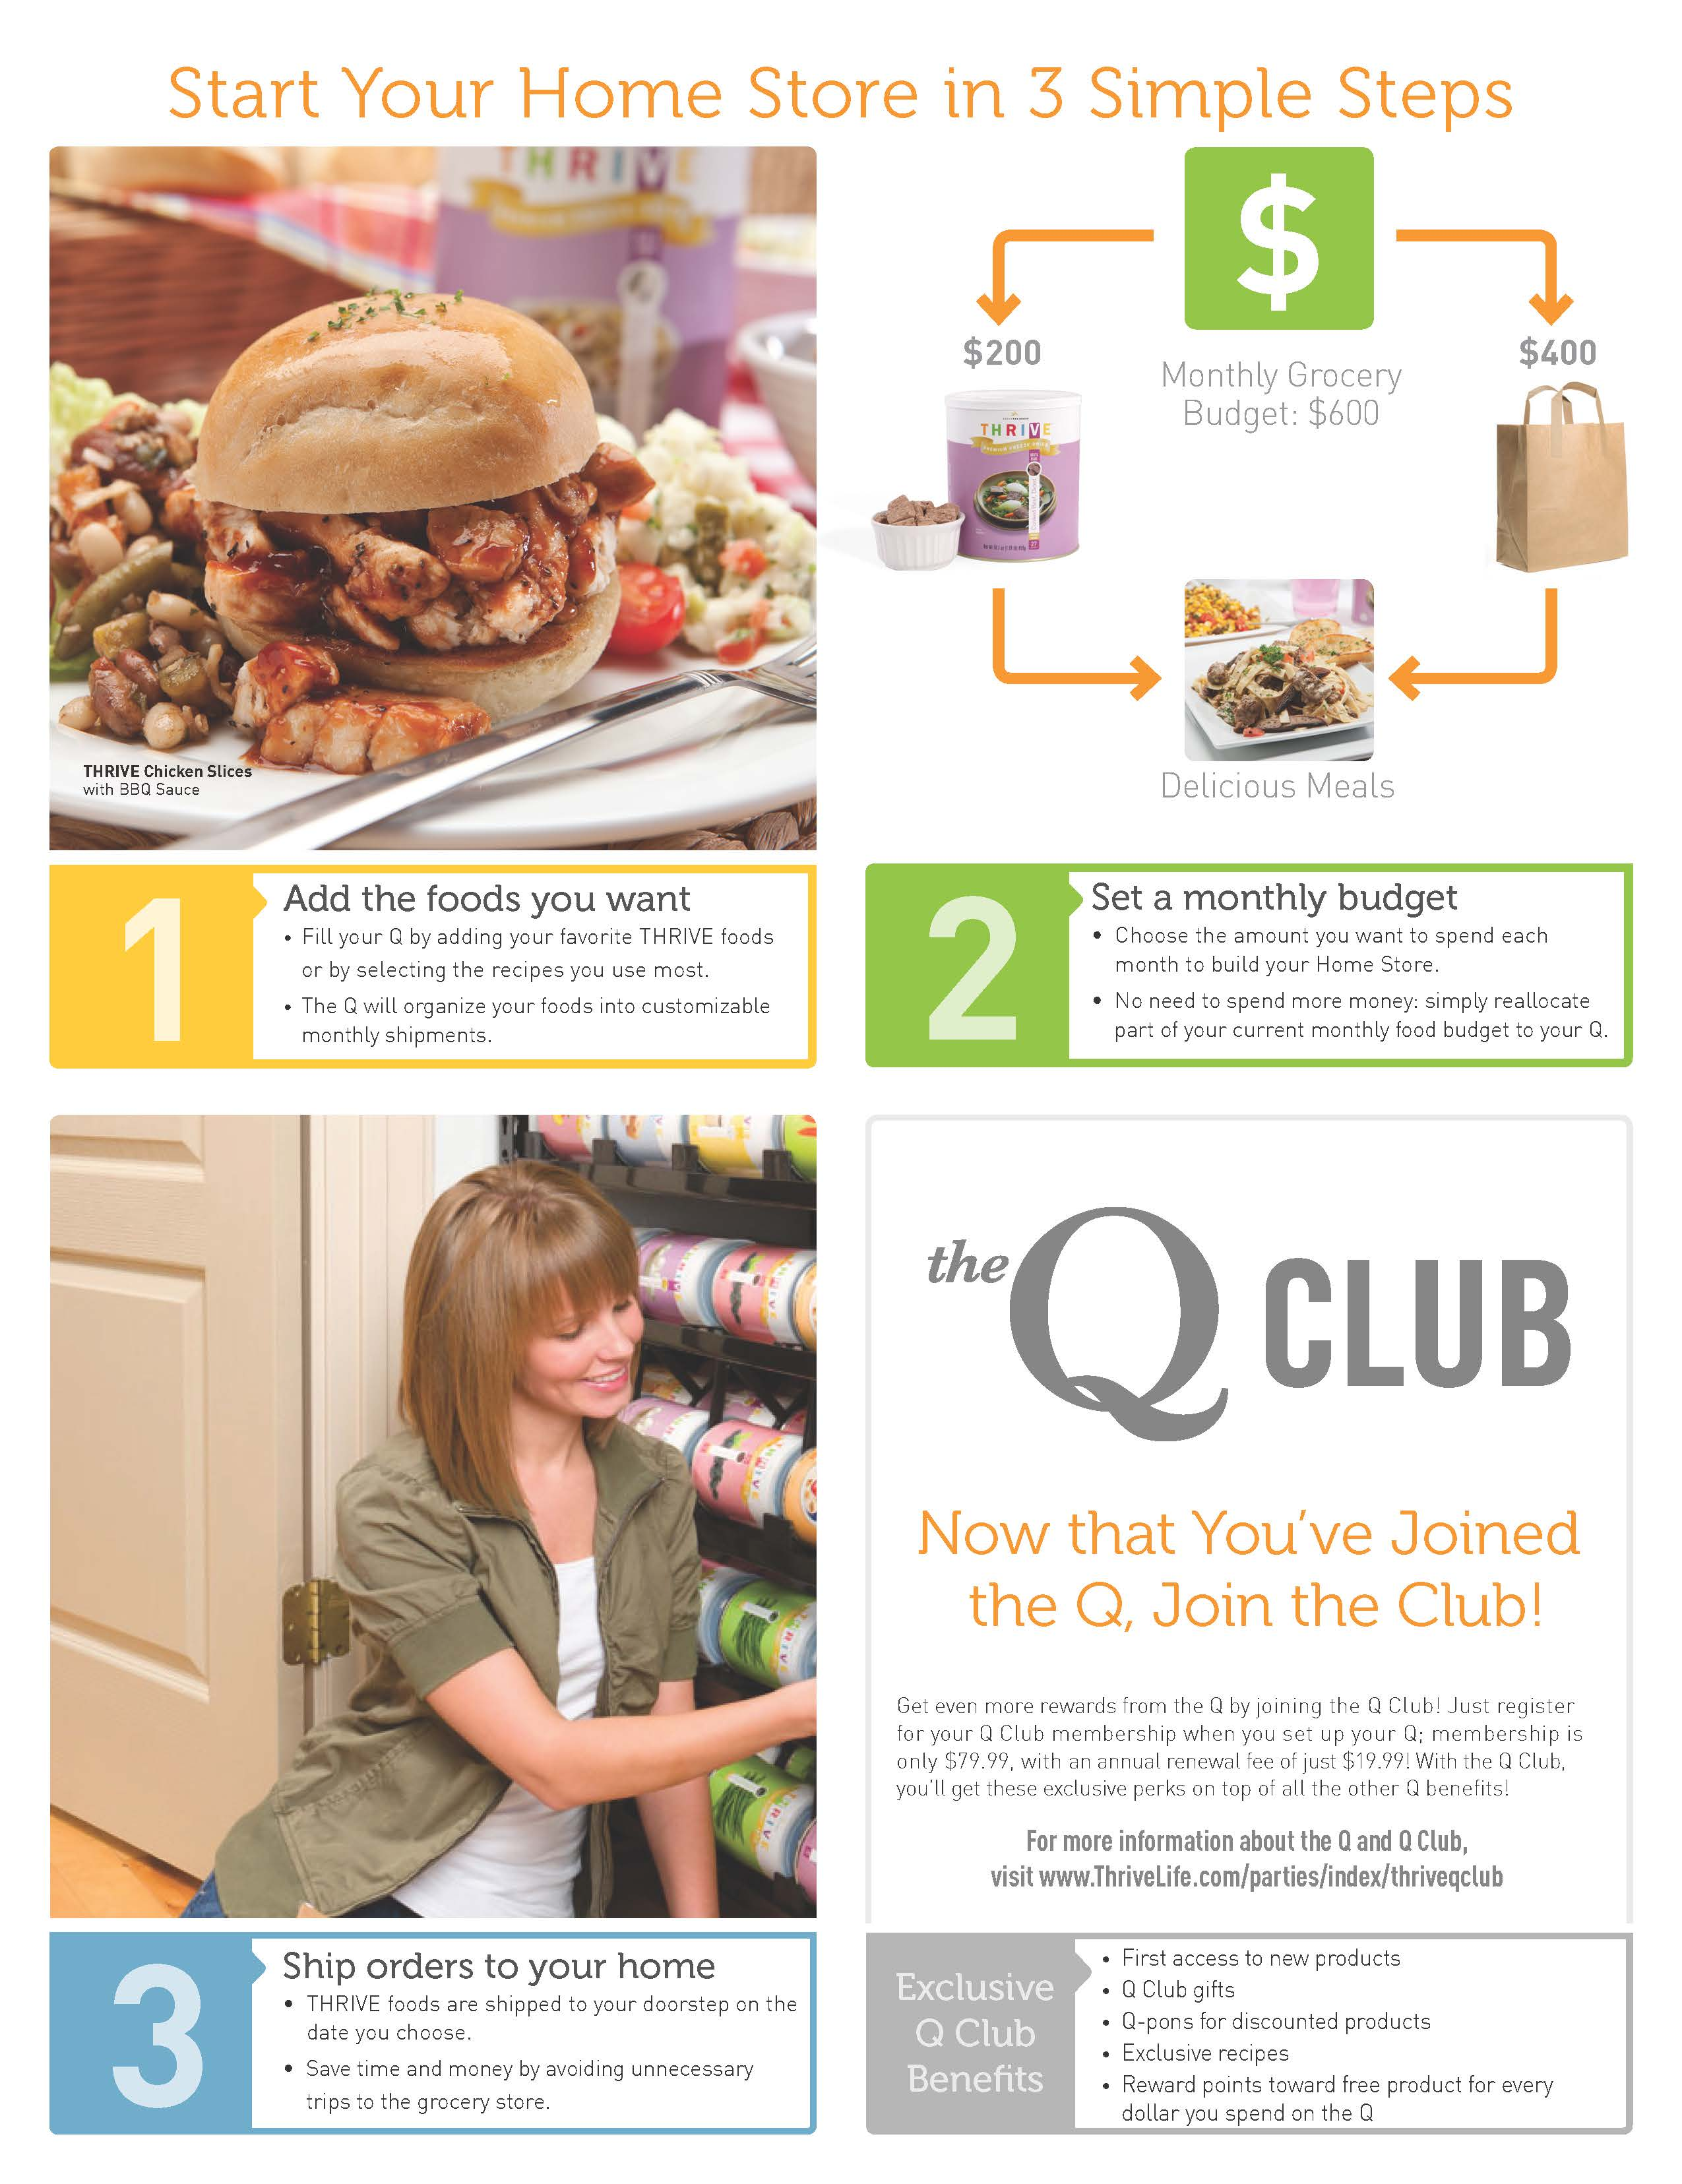 Steps for setting up Q Club